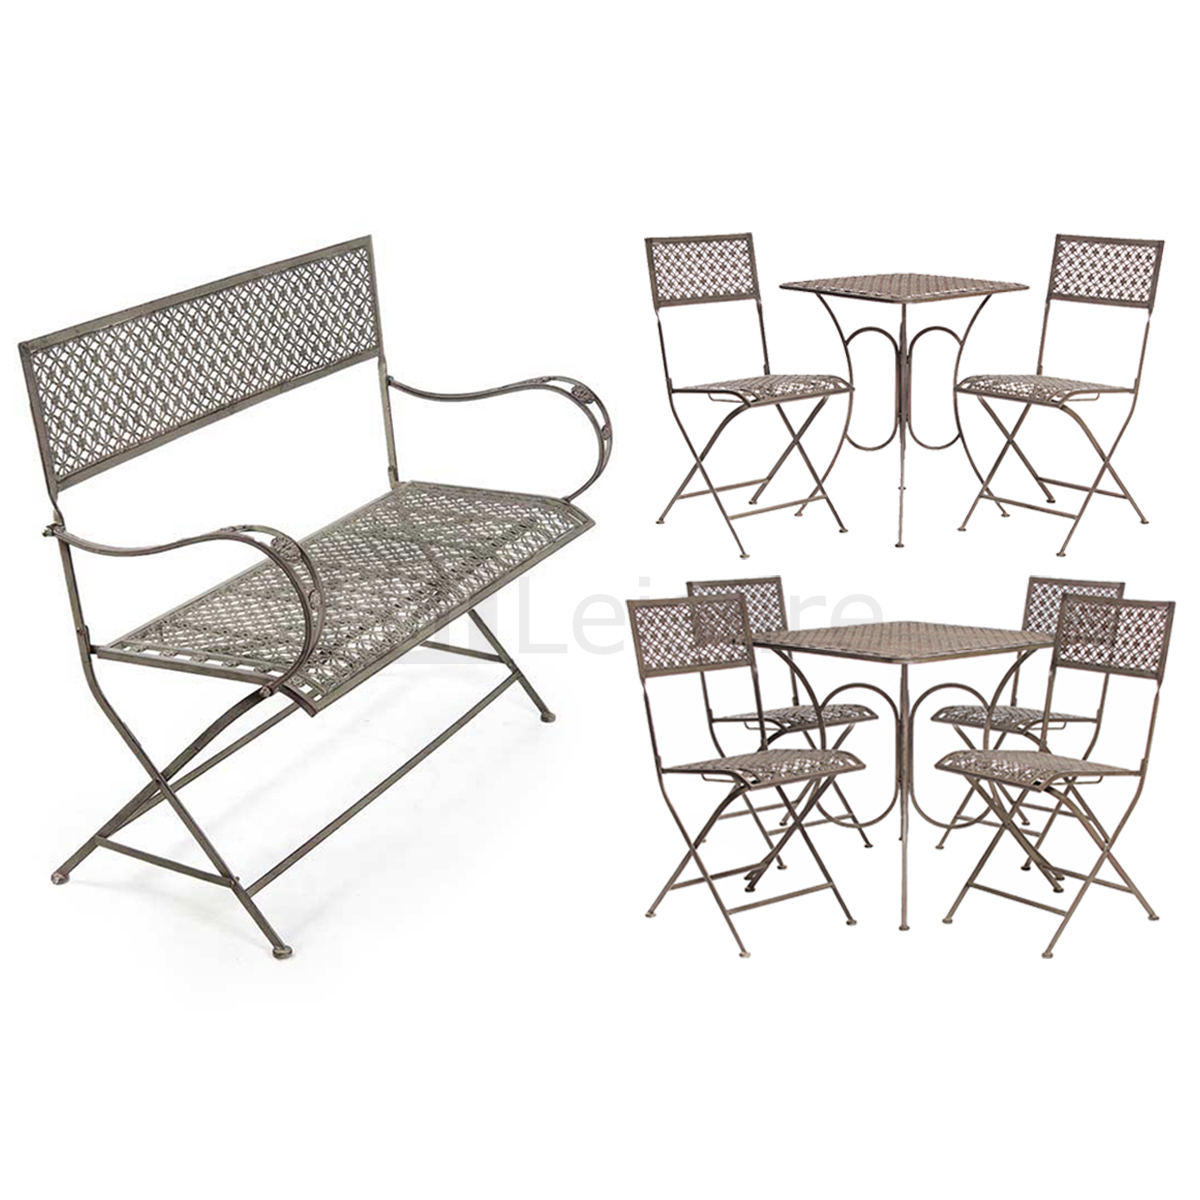 Vintage steel bistro furniture set garden table and chairs for Garden furniture table and chairs